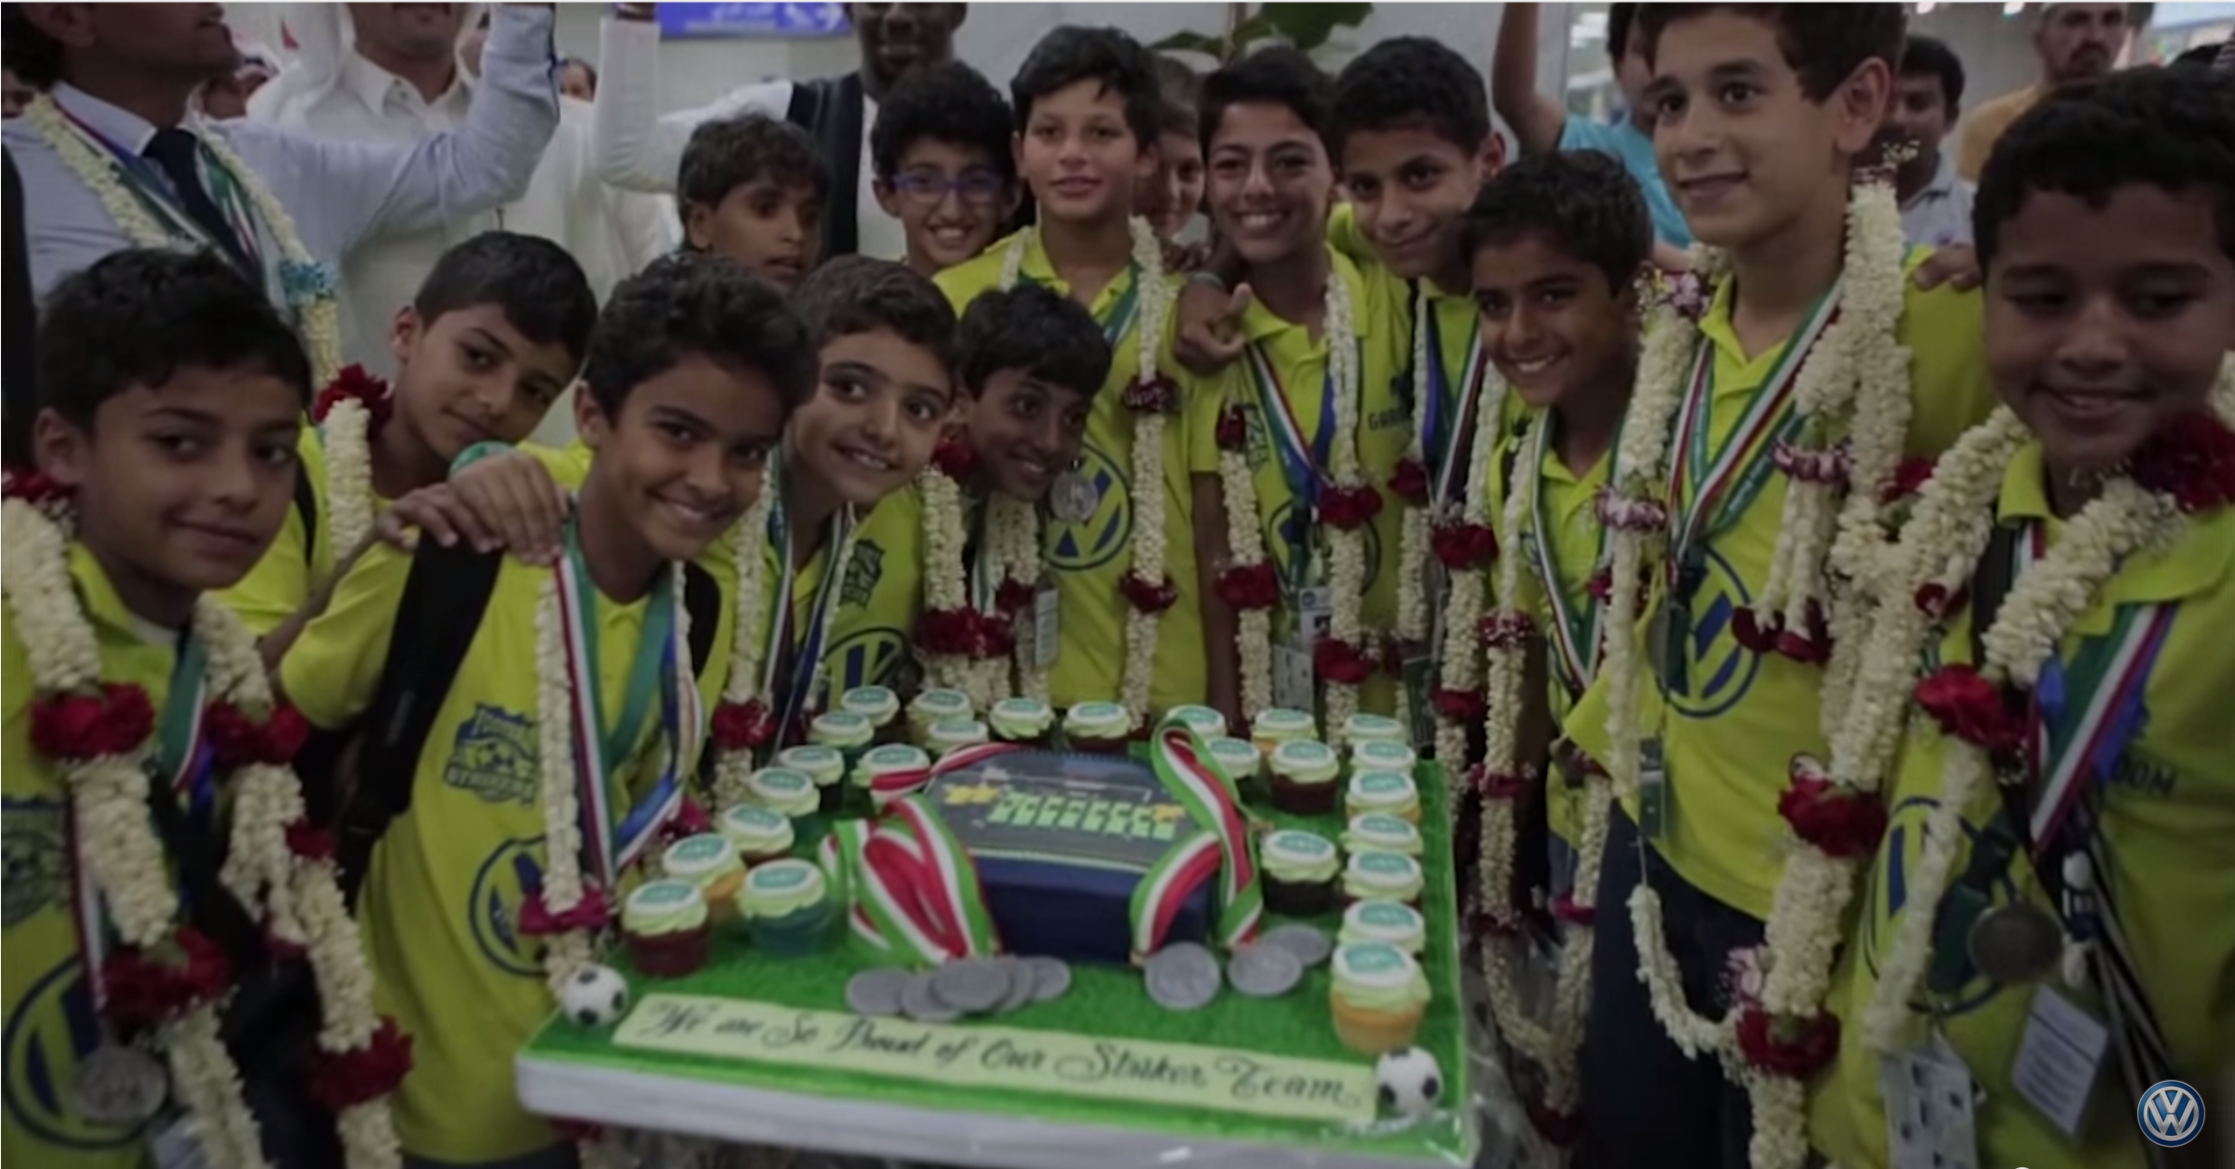 Saudi participation in Volkswagen Junior World Masters